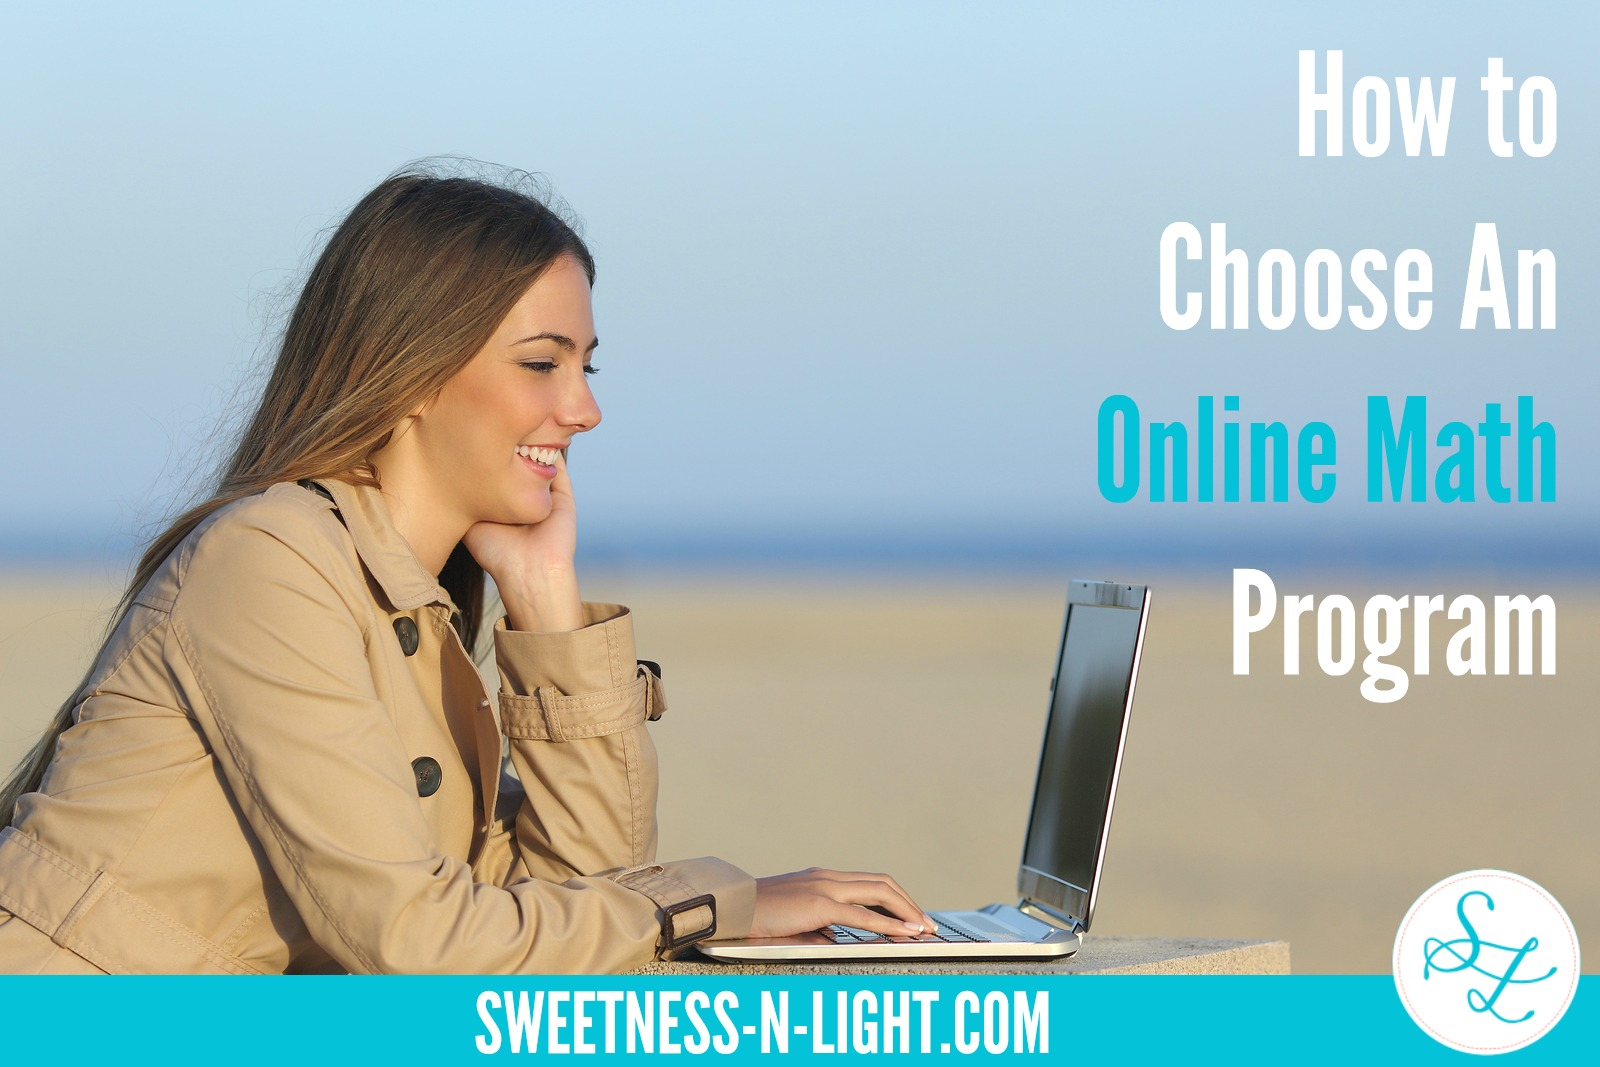 How to Choose an Online Math Program - Sweetness-n-Light